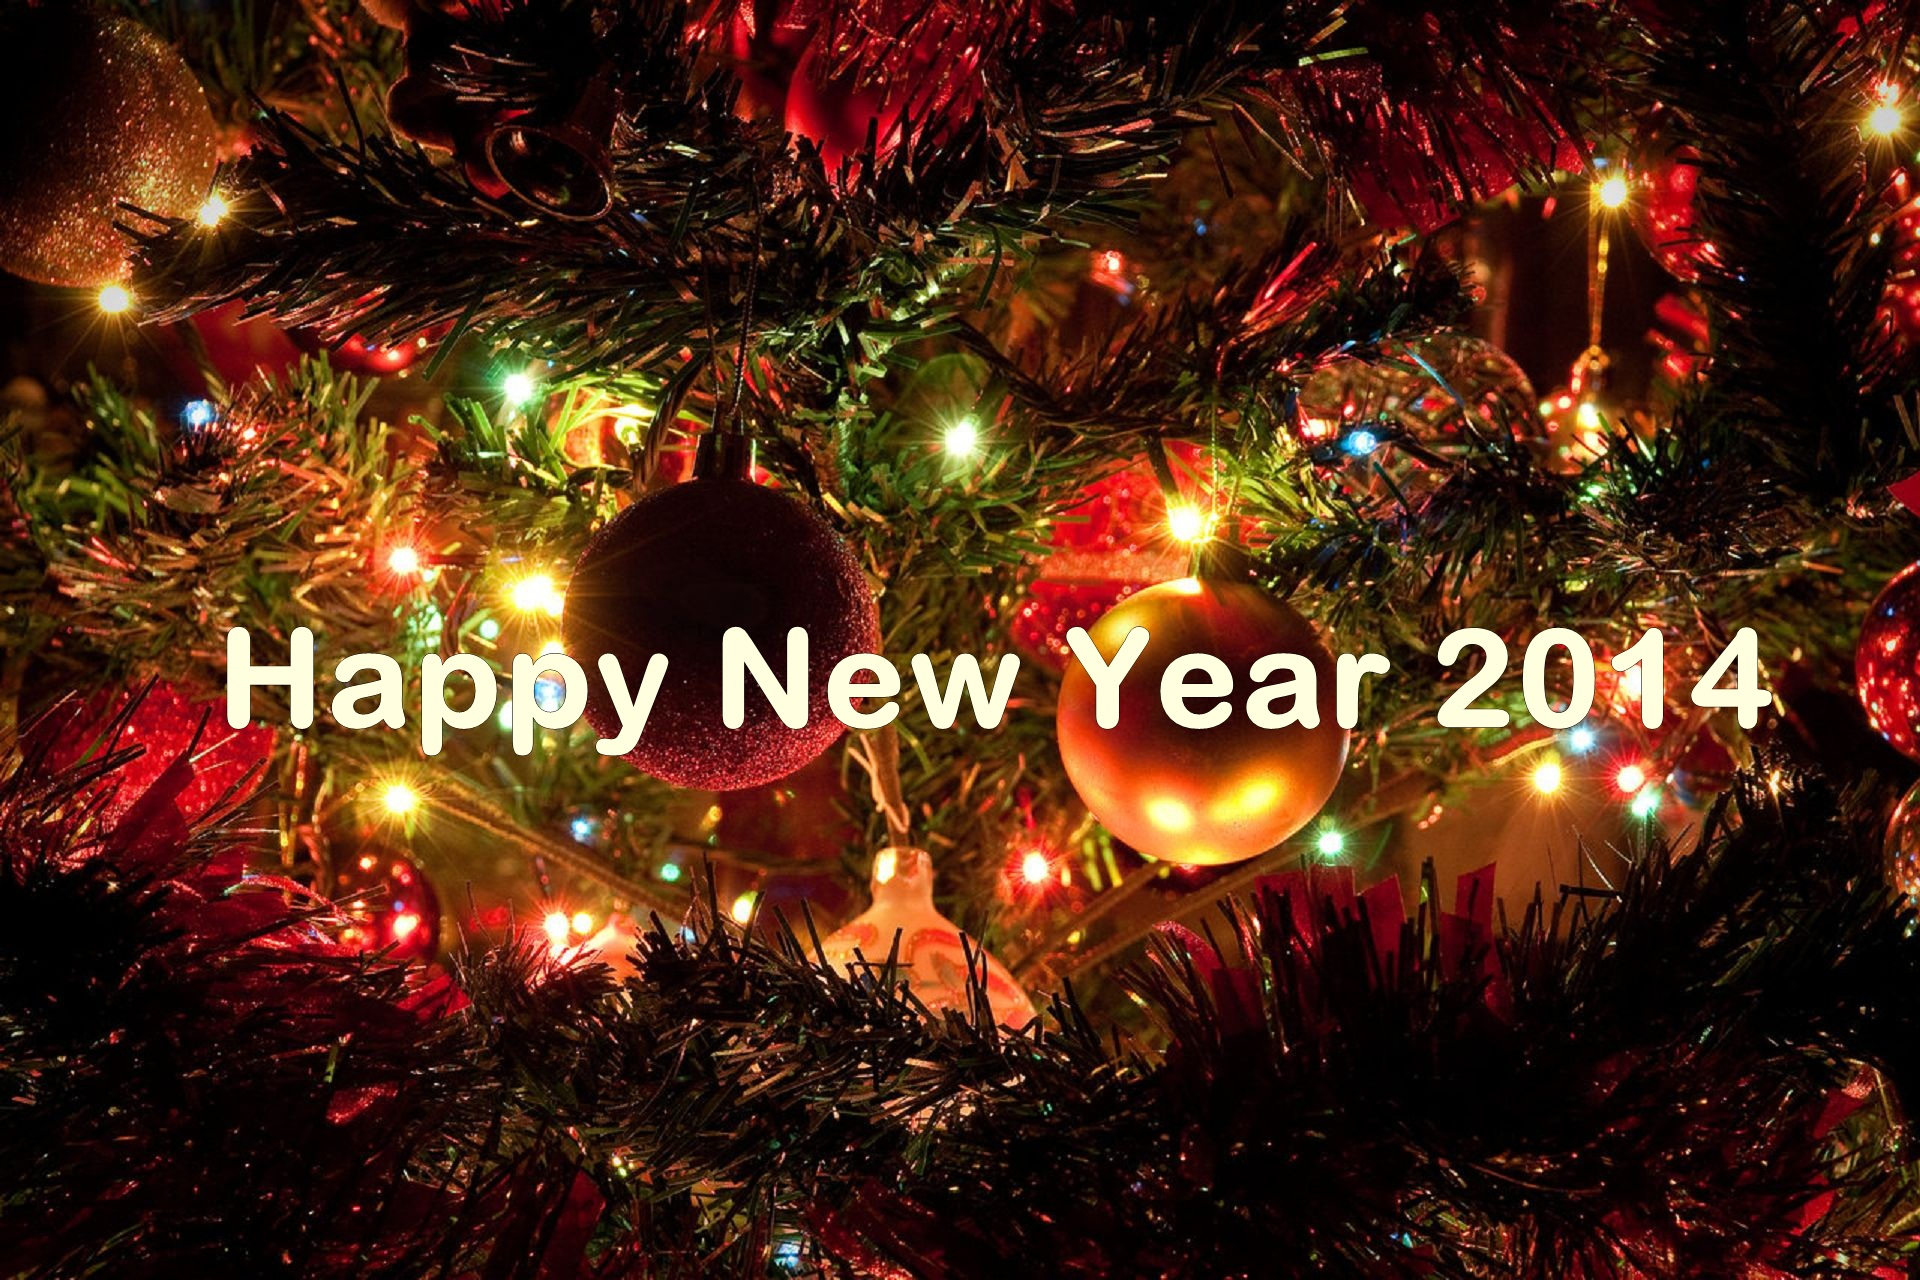 happy new year 2014 and how russians celebrate new year lada ray blog